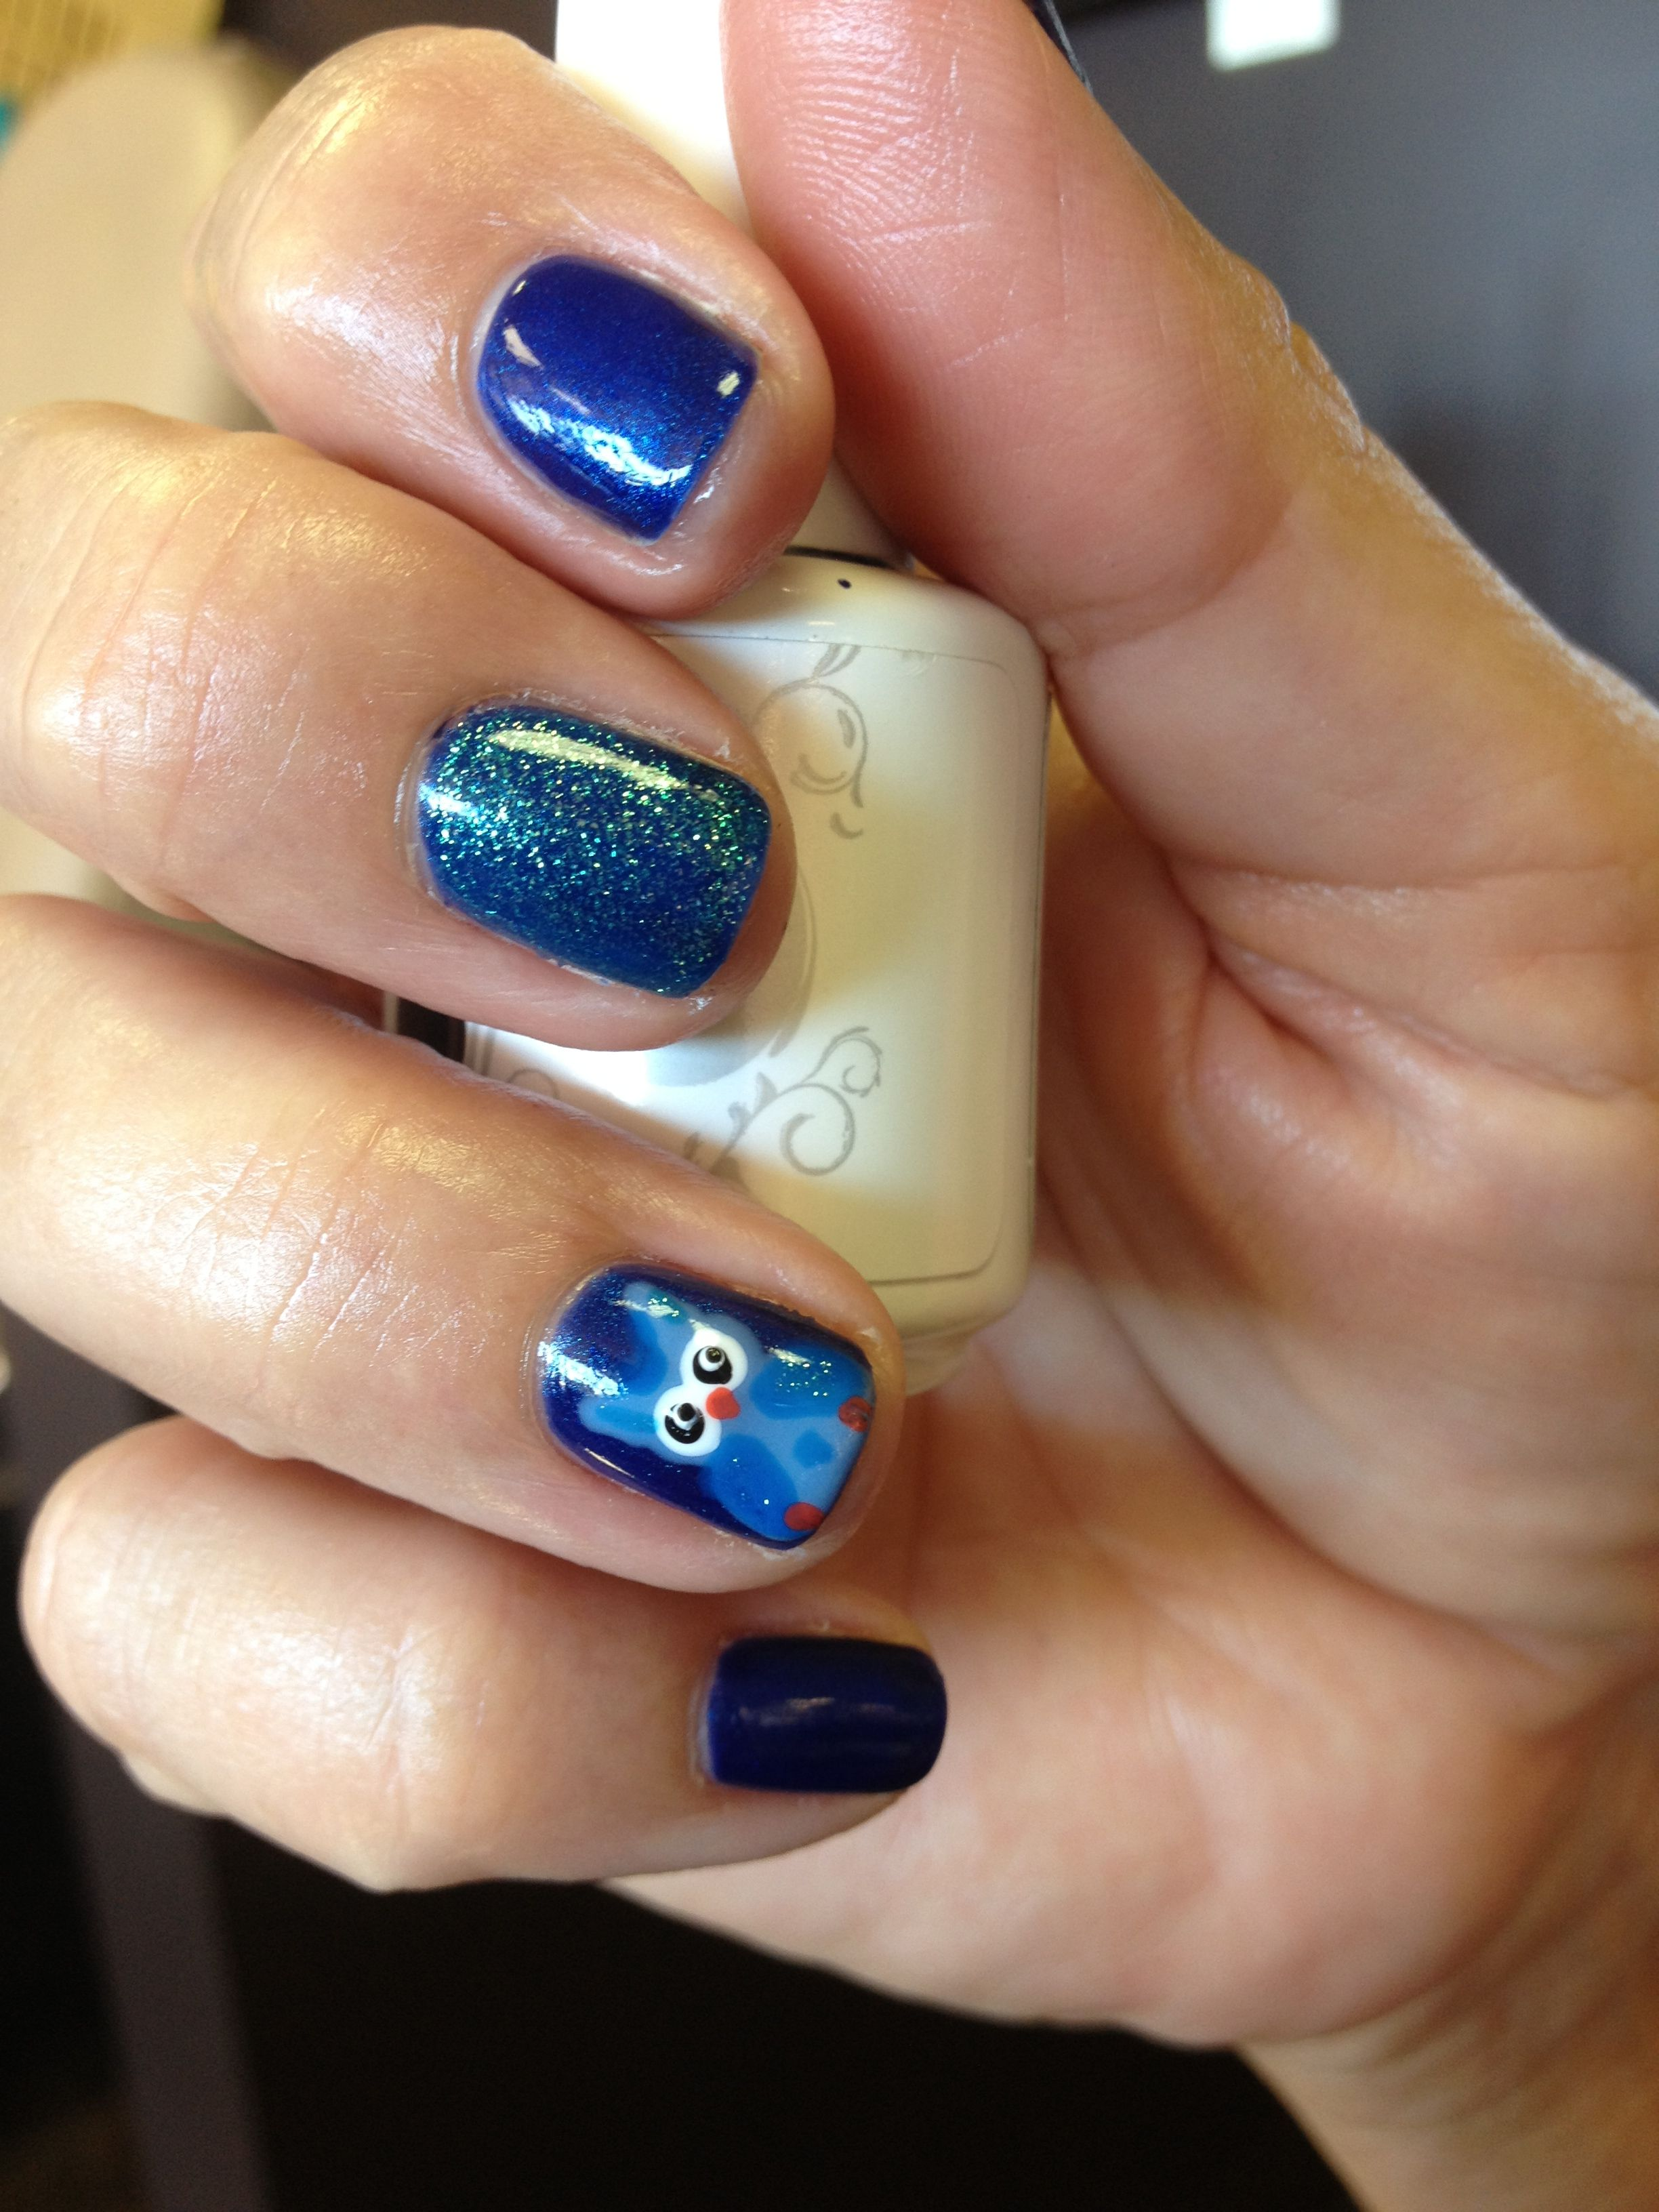 Gelish manicure with cute blue owl nail art for fall. :) | Nails ...